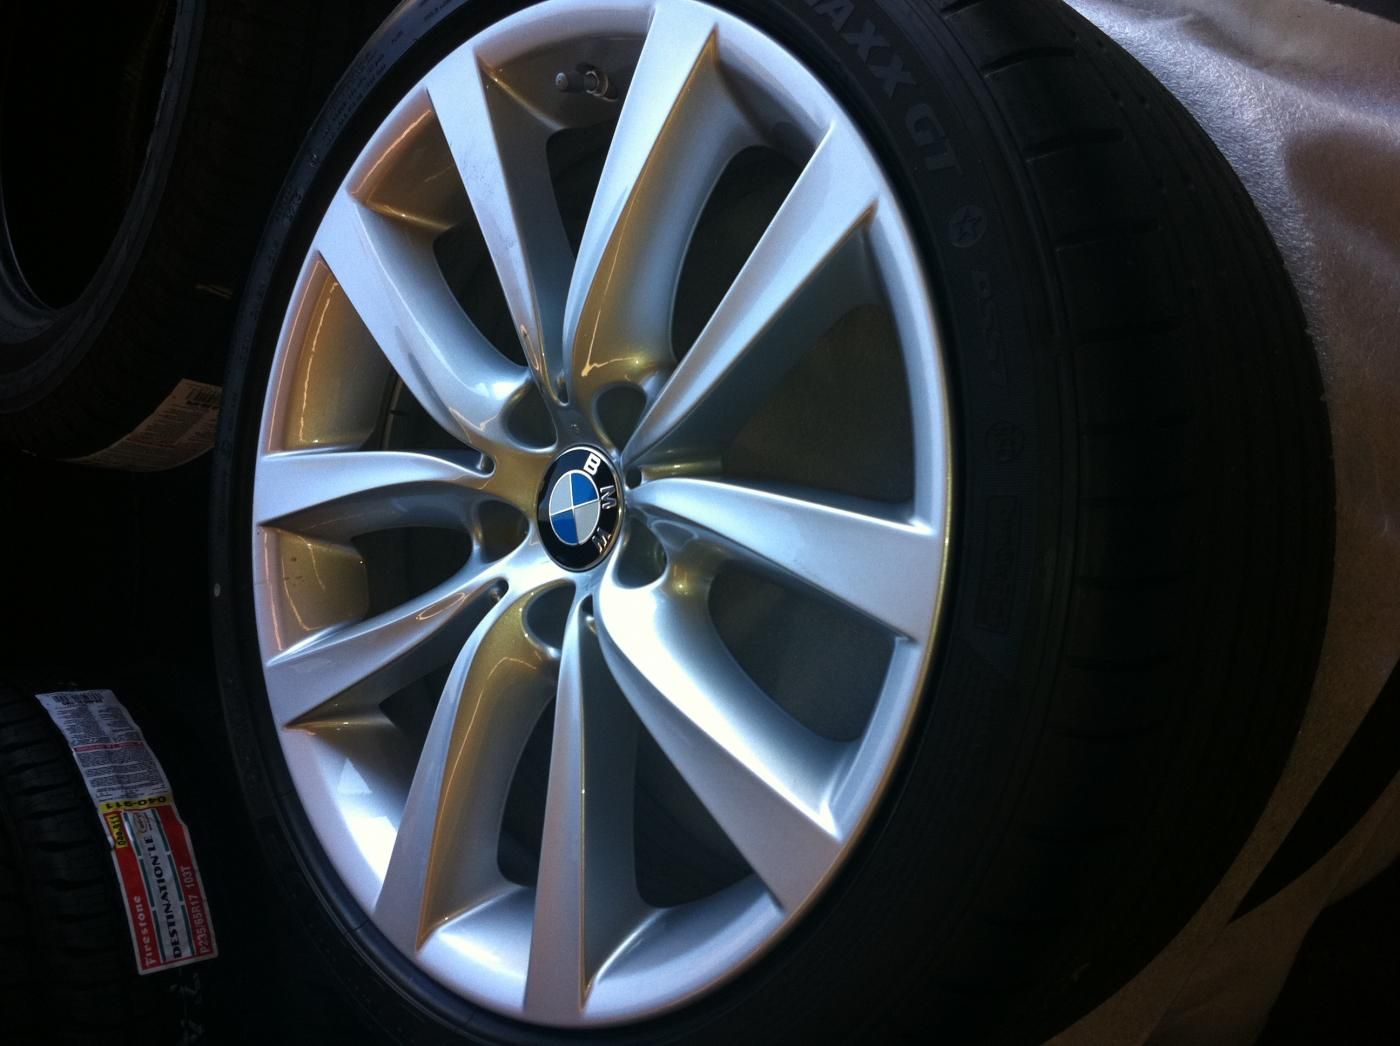 SET OF NEW BMW OEM Wheels NEVER USED - 2011 bmw rims